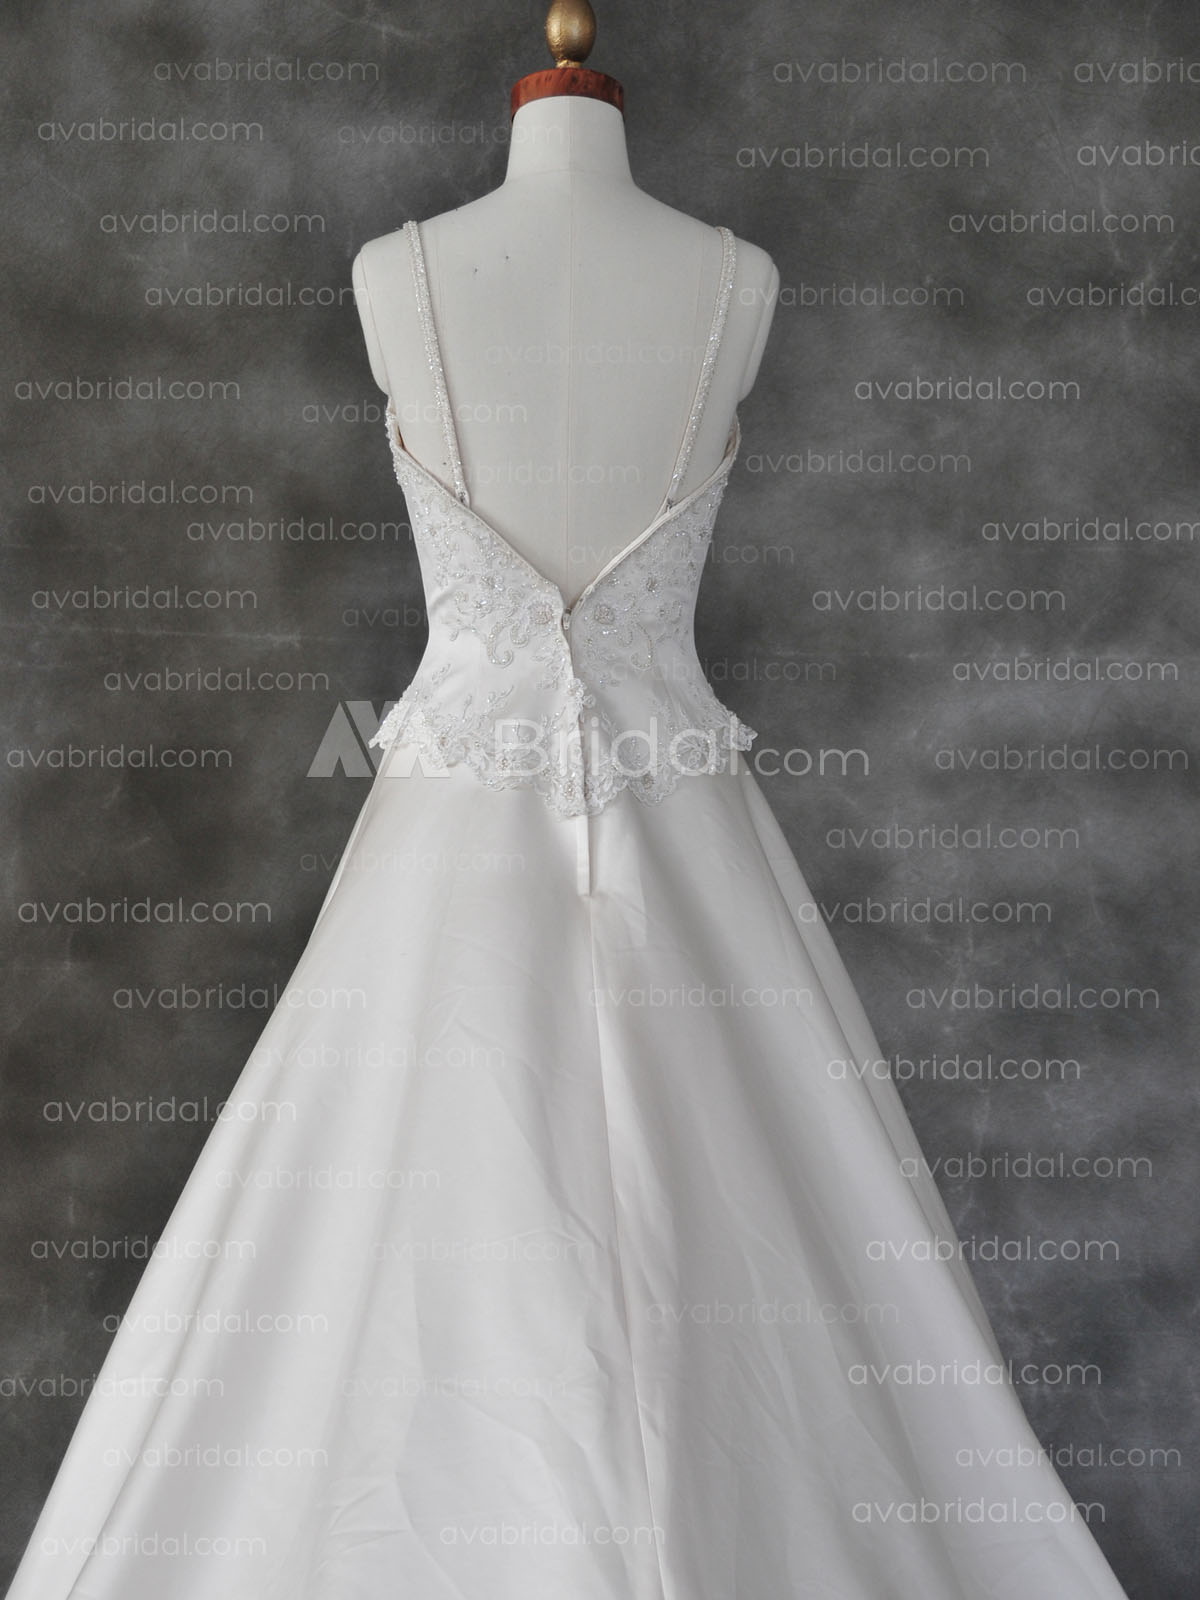 Plus Size Wedding Dresses Va : Plus size wedding gown yelisa